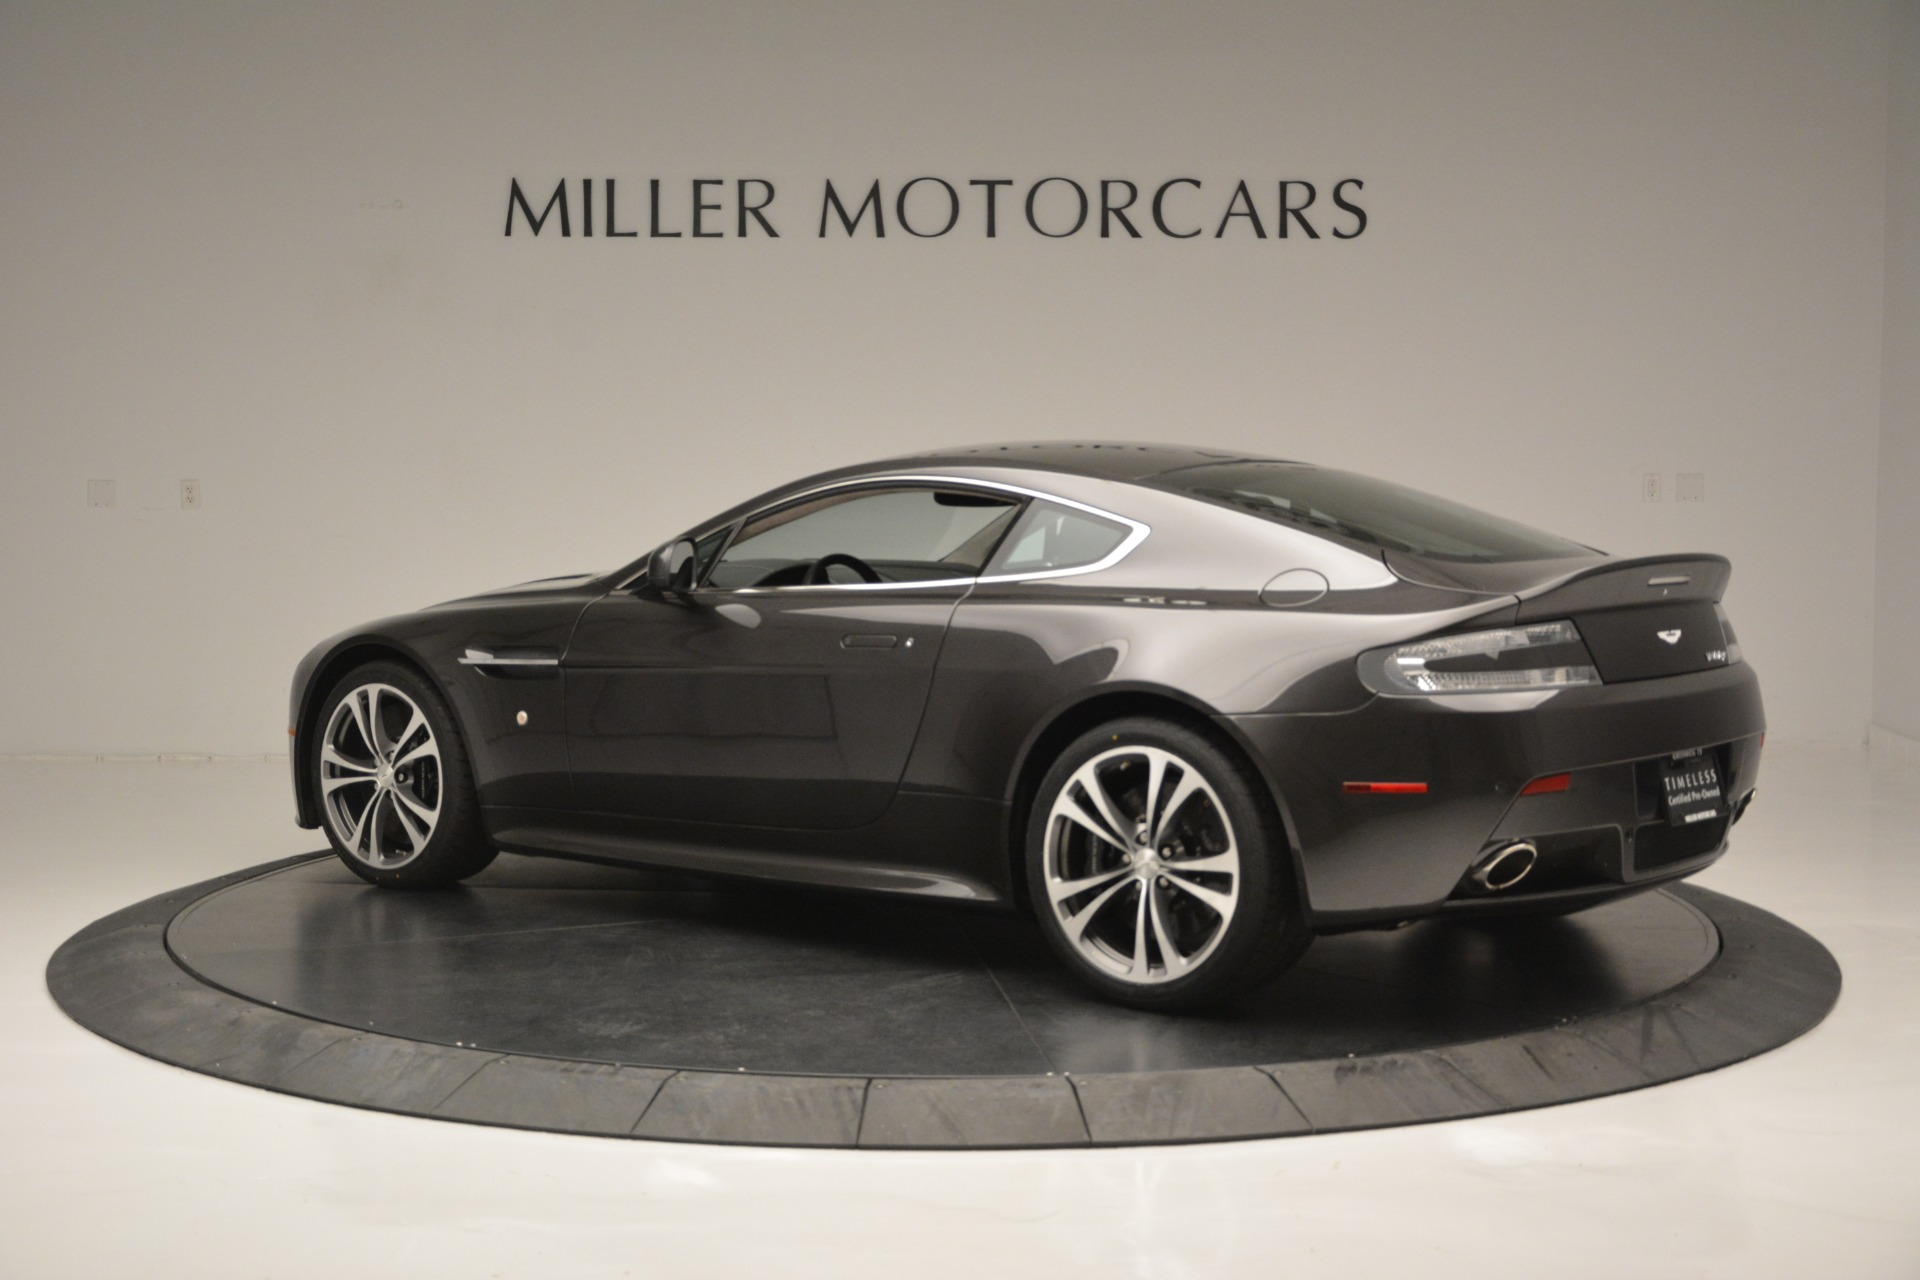 Used 2012 Aston Martin V12 Vantage Coupe For Sale In Greenwich, CT. Alfa Romeo of Greenwich, 7425 2544_p4